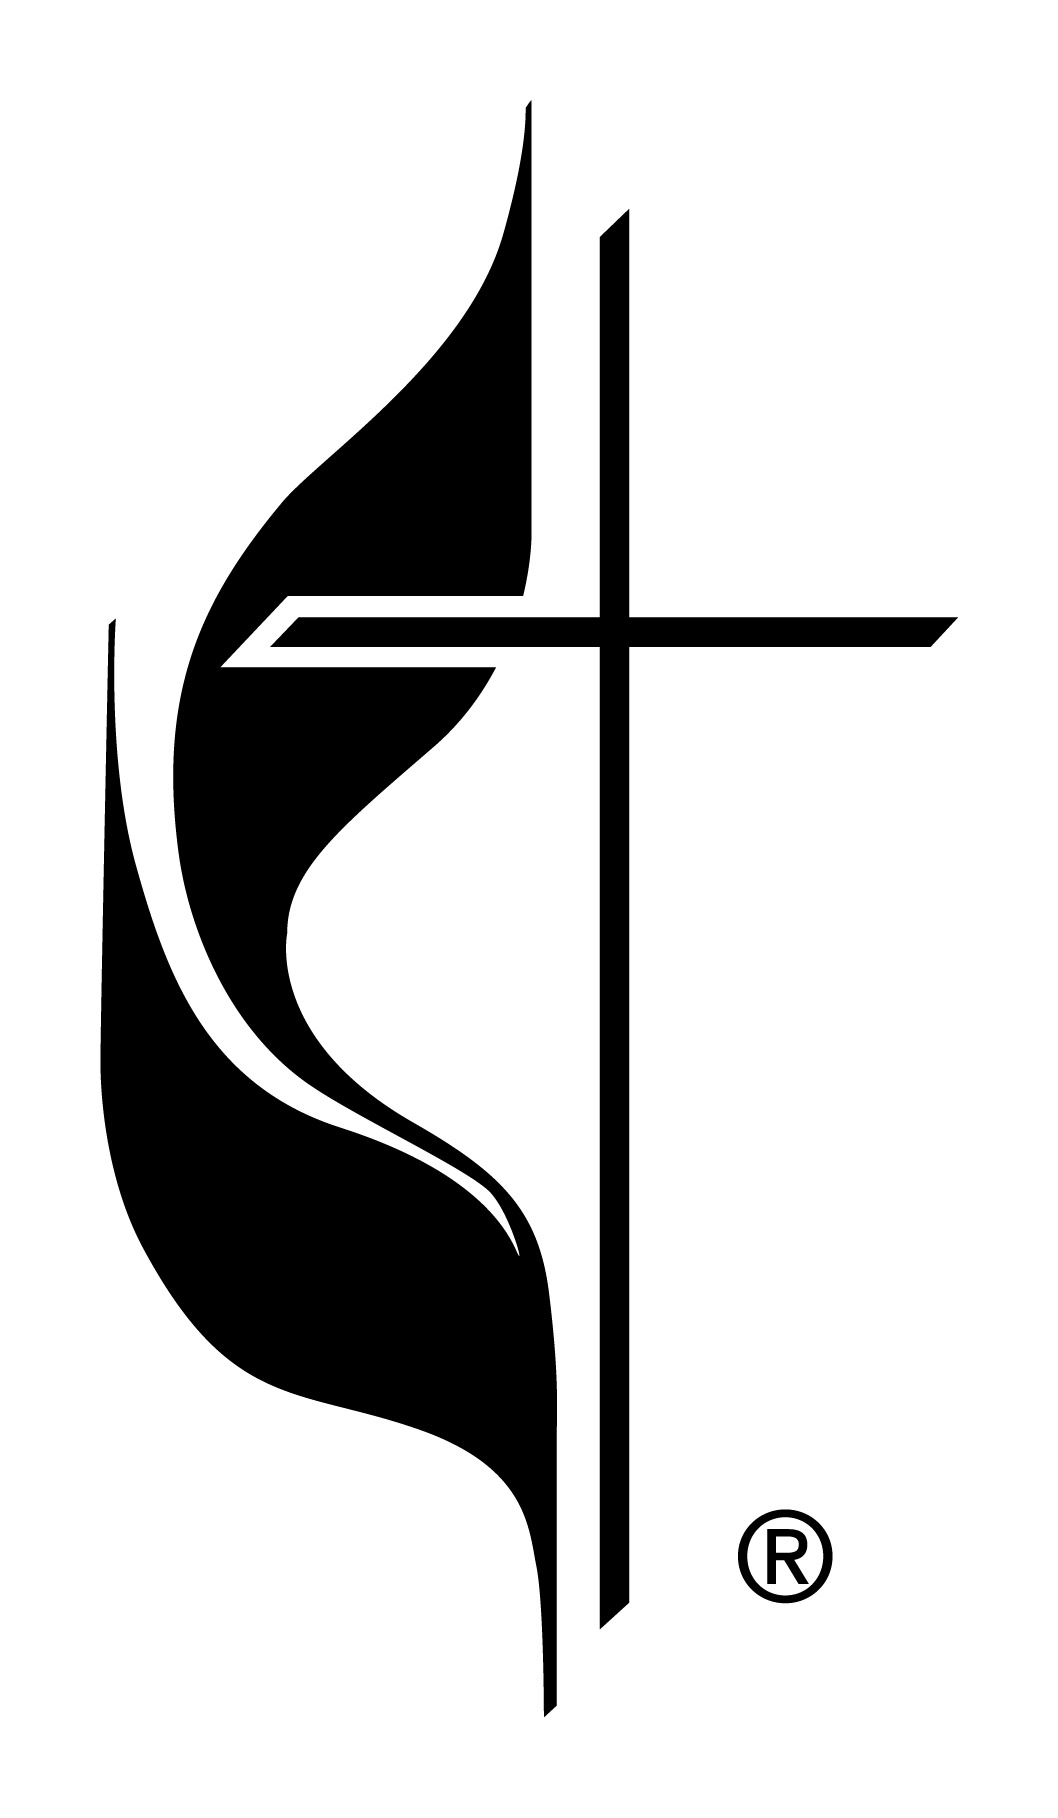 Cross clipart black and white png. Flame the united methodist